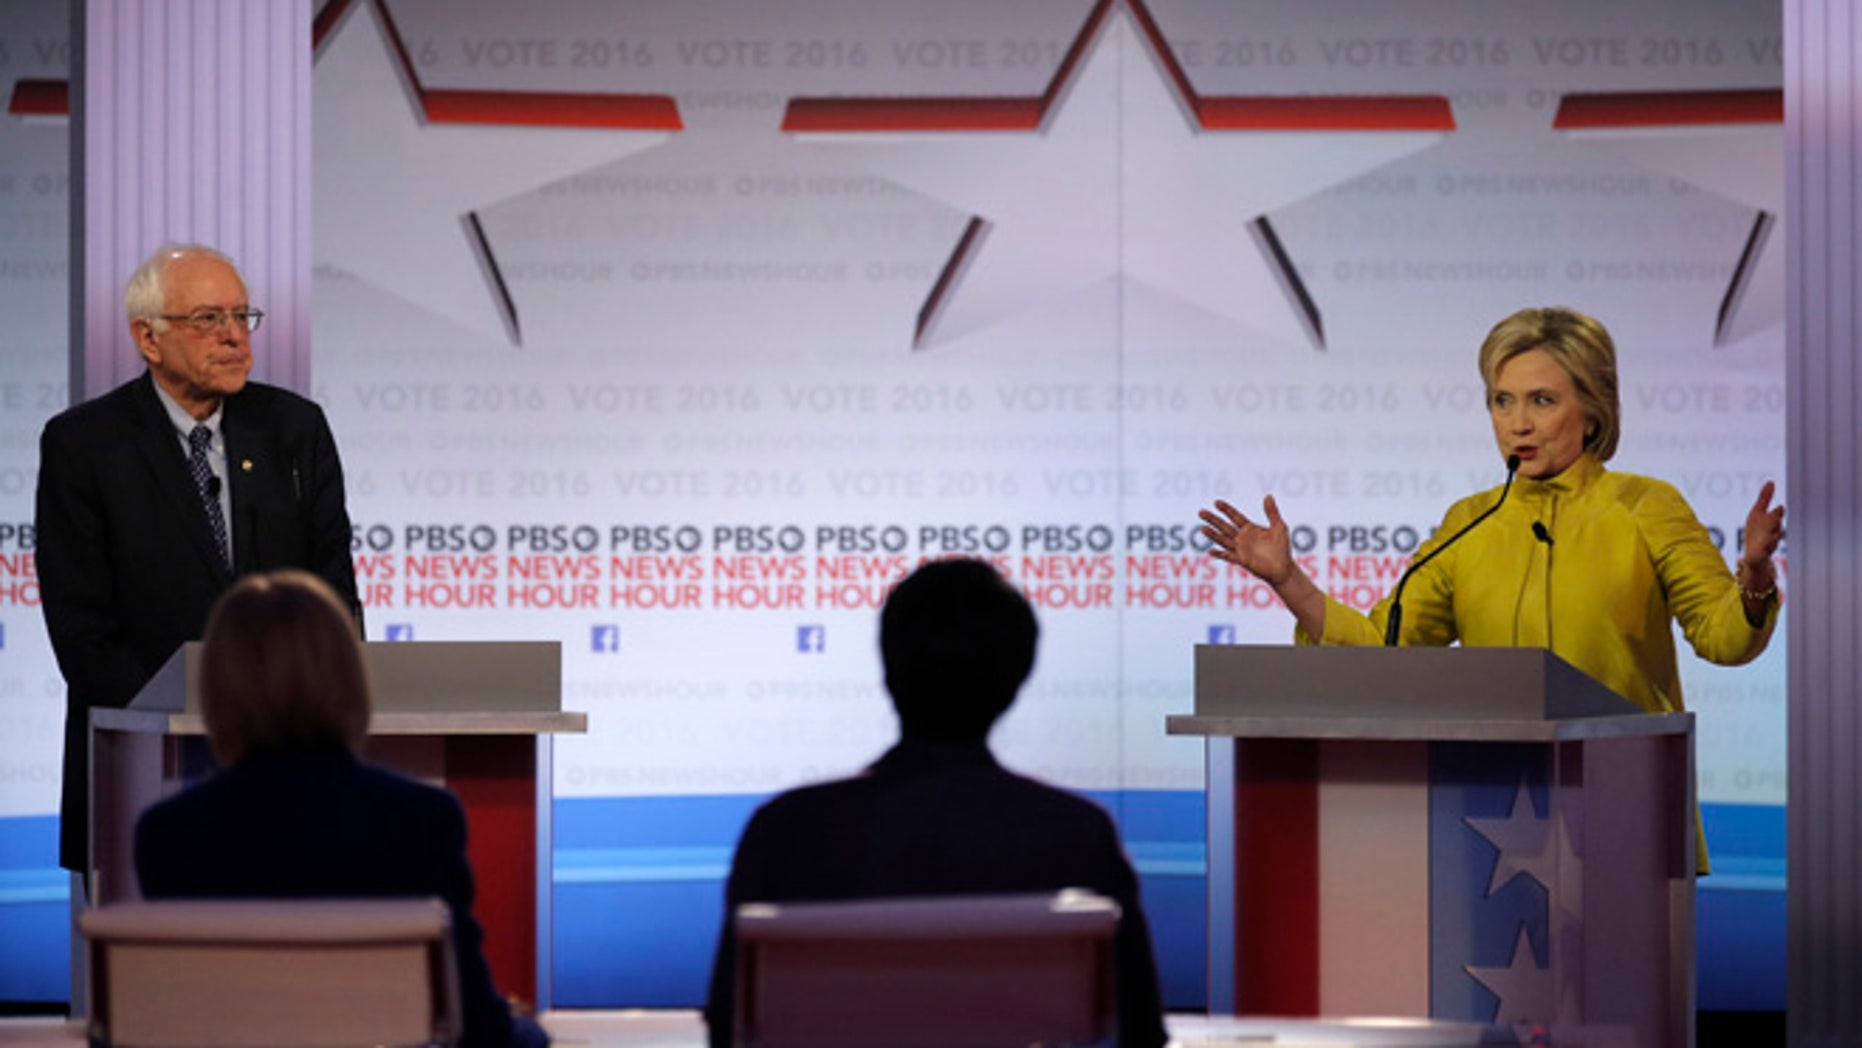 Democratic U.S. presidential candidate former Secretary of State Hillary Clinton speaks as Senator Bernie Sanders listens at the PBS NewsHour Democratic presidential candidates debate in Milwaukee, Wisconsin, February 11, 2016. REUTERS/Jim Young  - RTX26KQQ